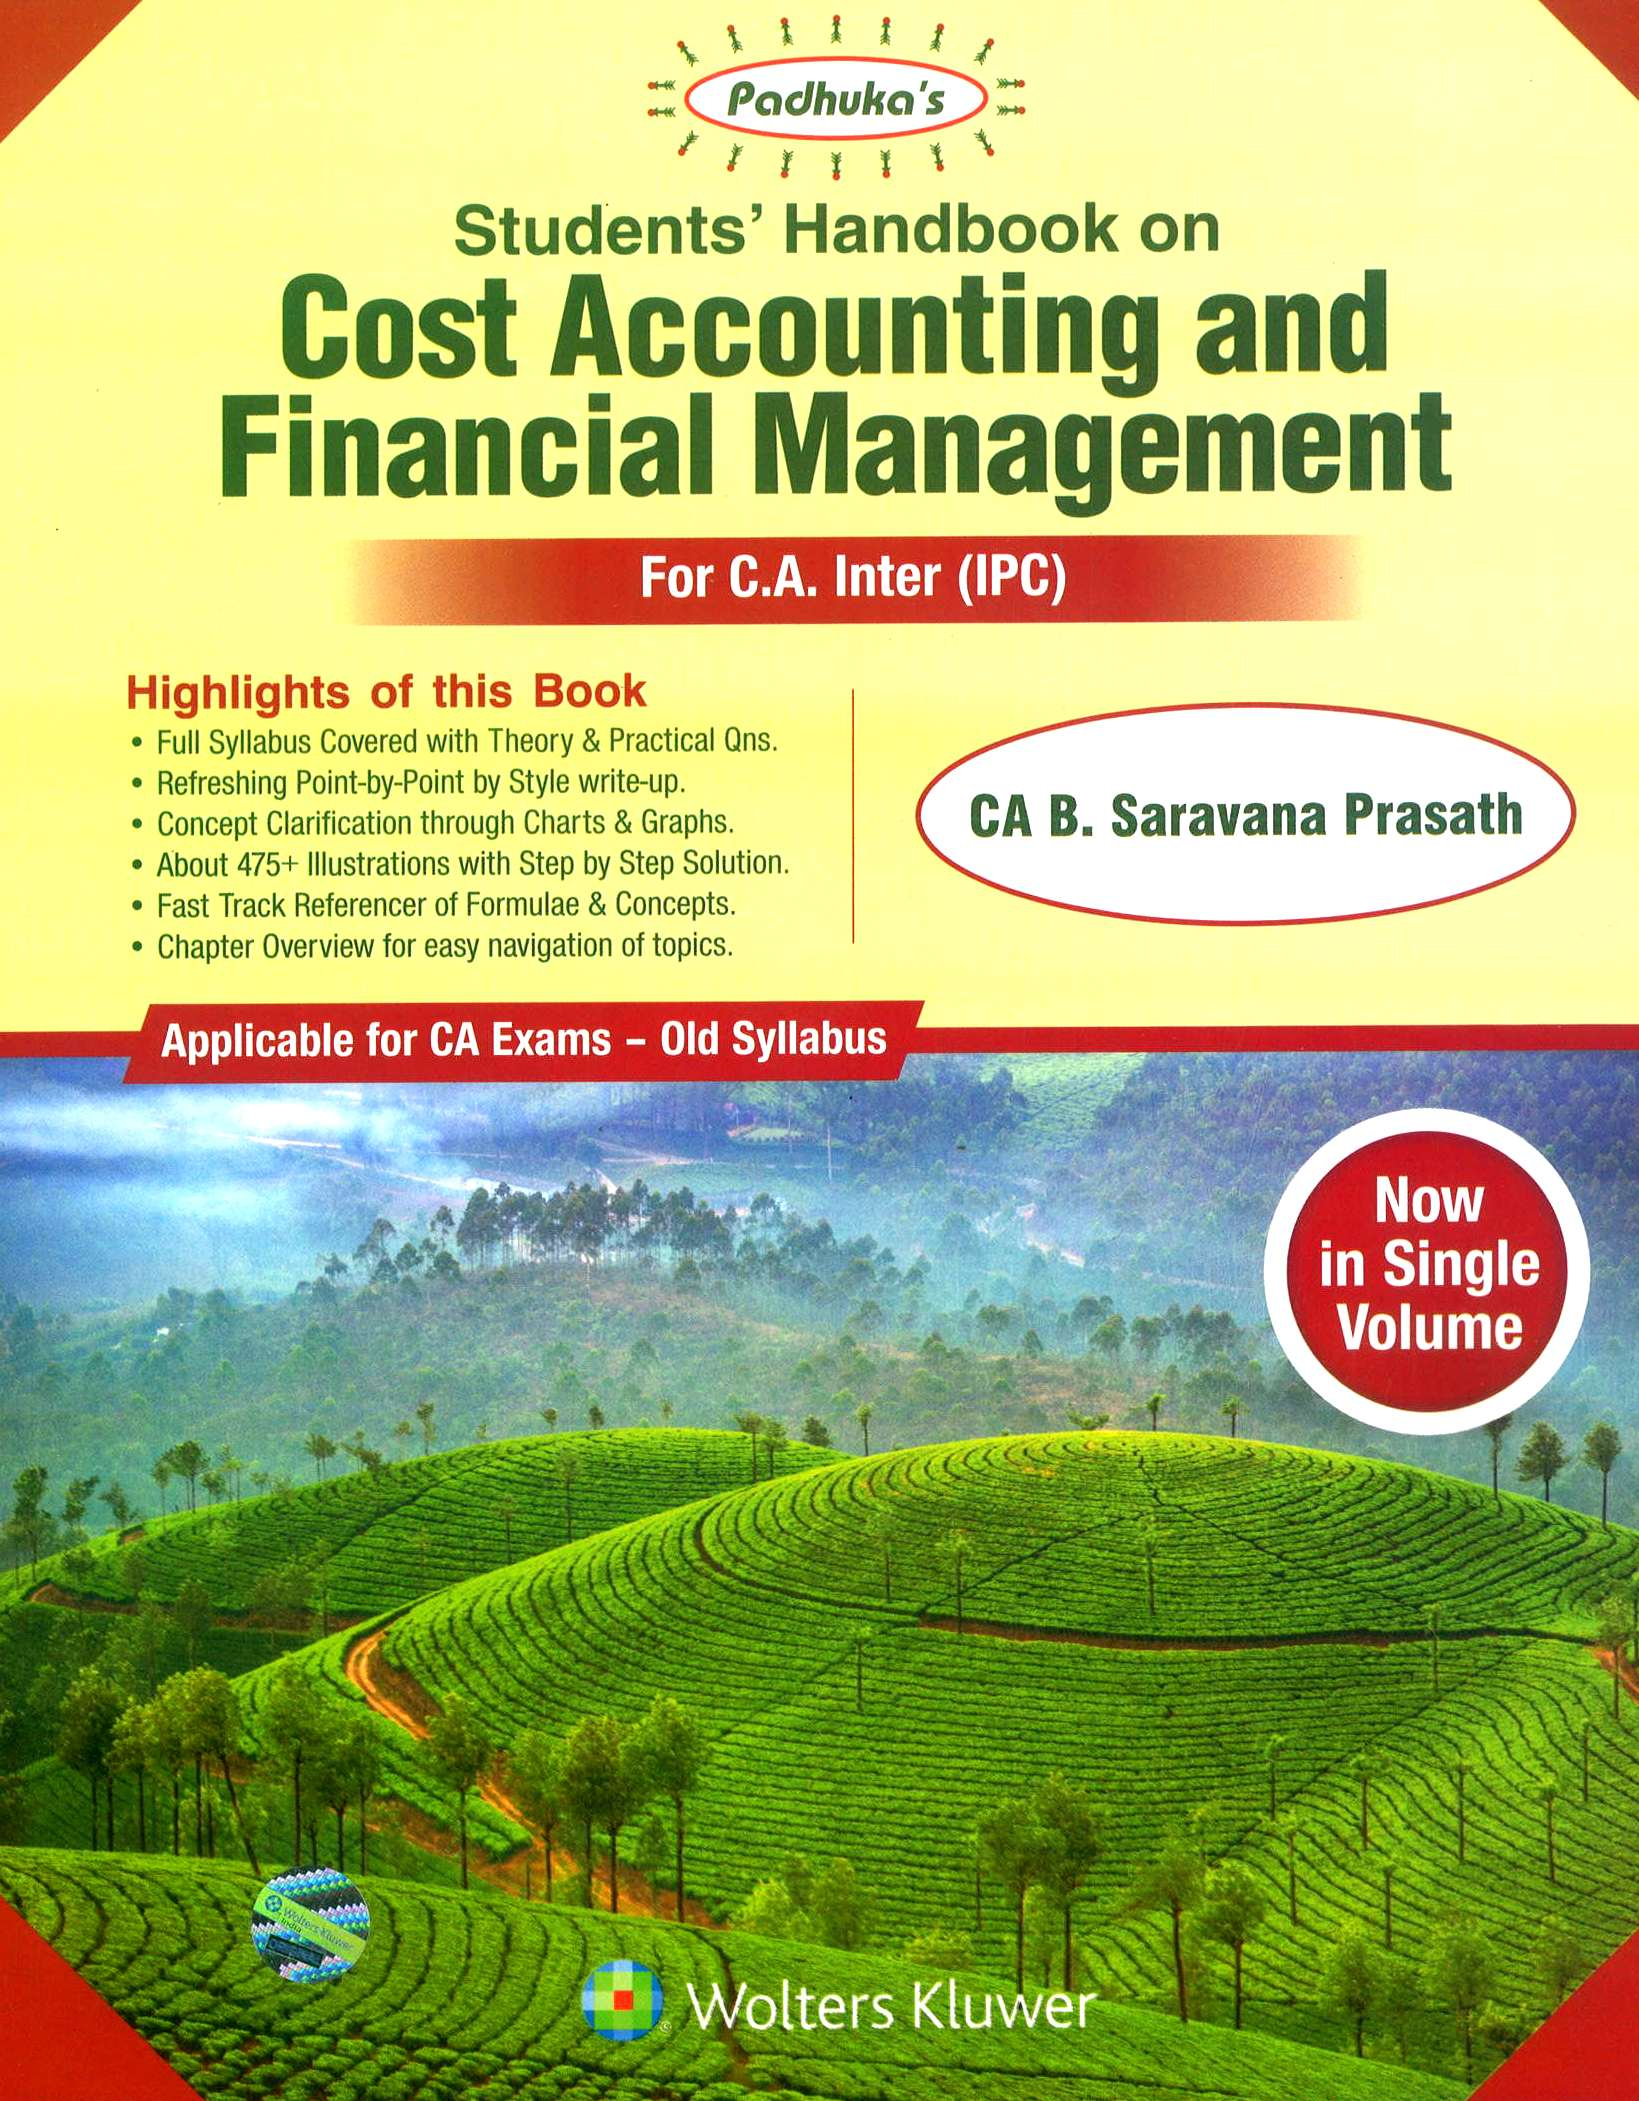 Padhuka Students' Handbook on COST ACCOUNTING and FINANCIAL MANAGEMENT old syllabus For C.A. IPCC By B. Saravana Prasath Applicable for Nov 2018 Exam (Wolters Kluwer Publishing)